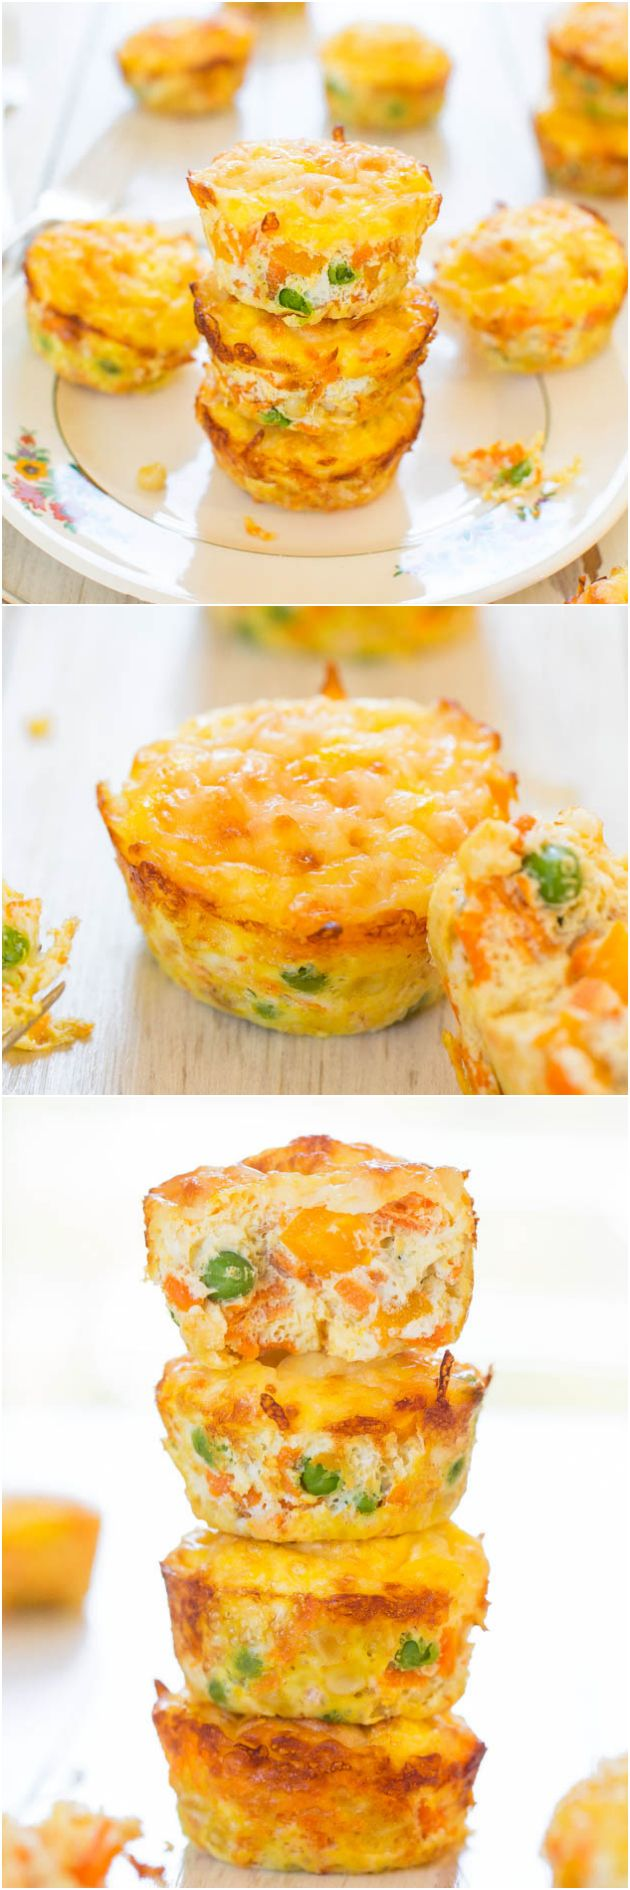 100-Calorie Cheese, Vegetable and Egg Muffins (GF) - Healthy, easy & only 100 calories! You'll want to keep a stash on hand! Perfect for brunch events!